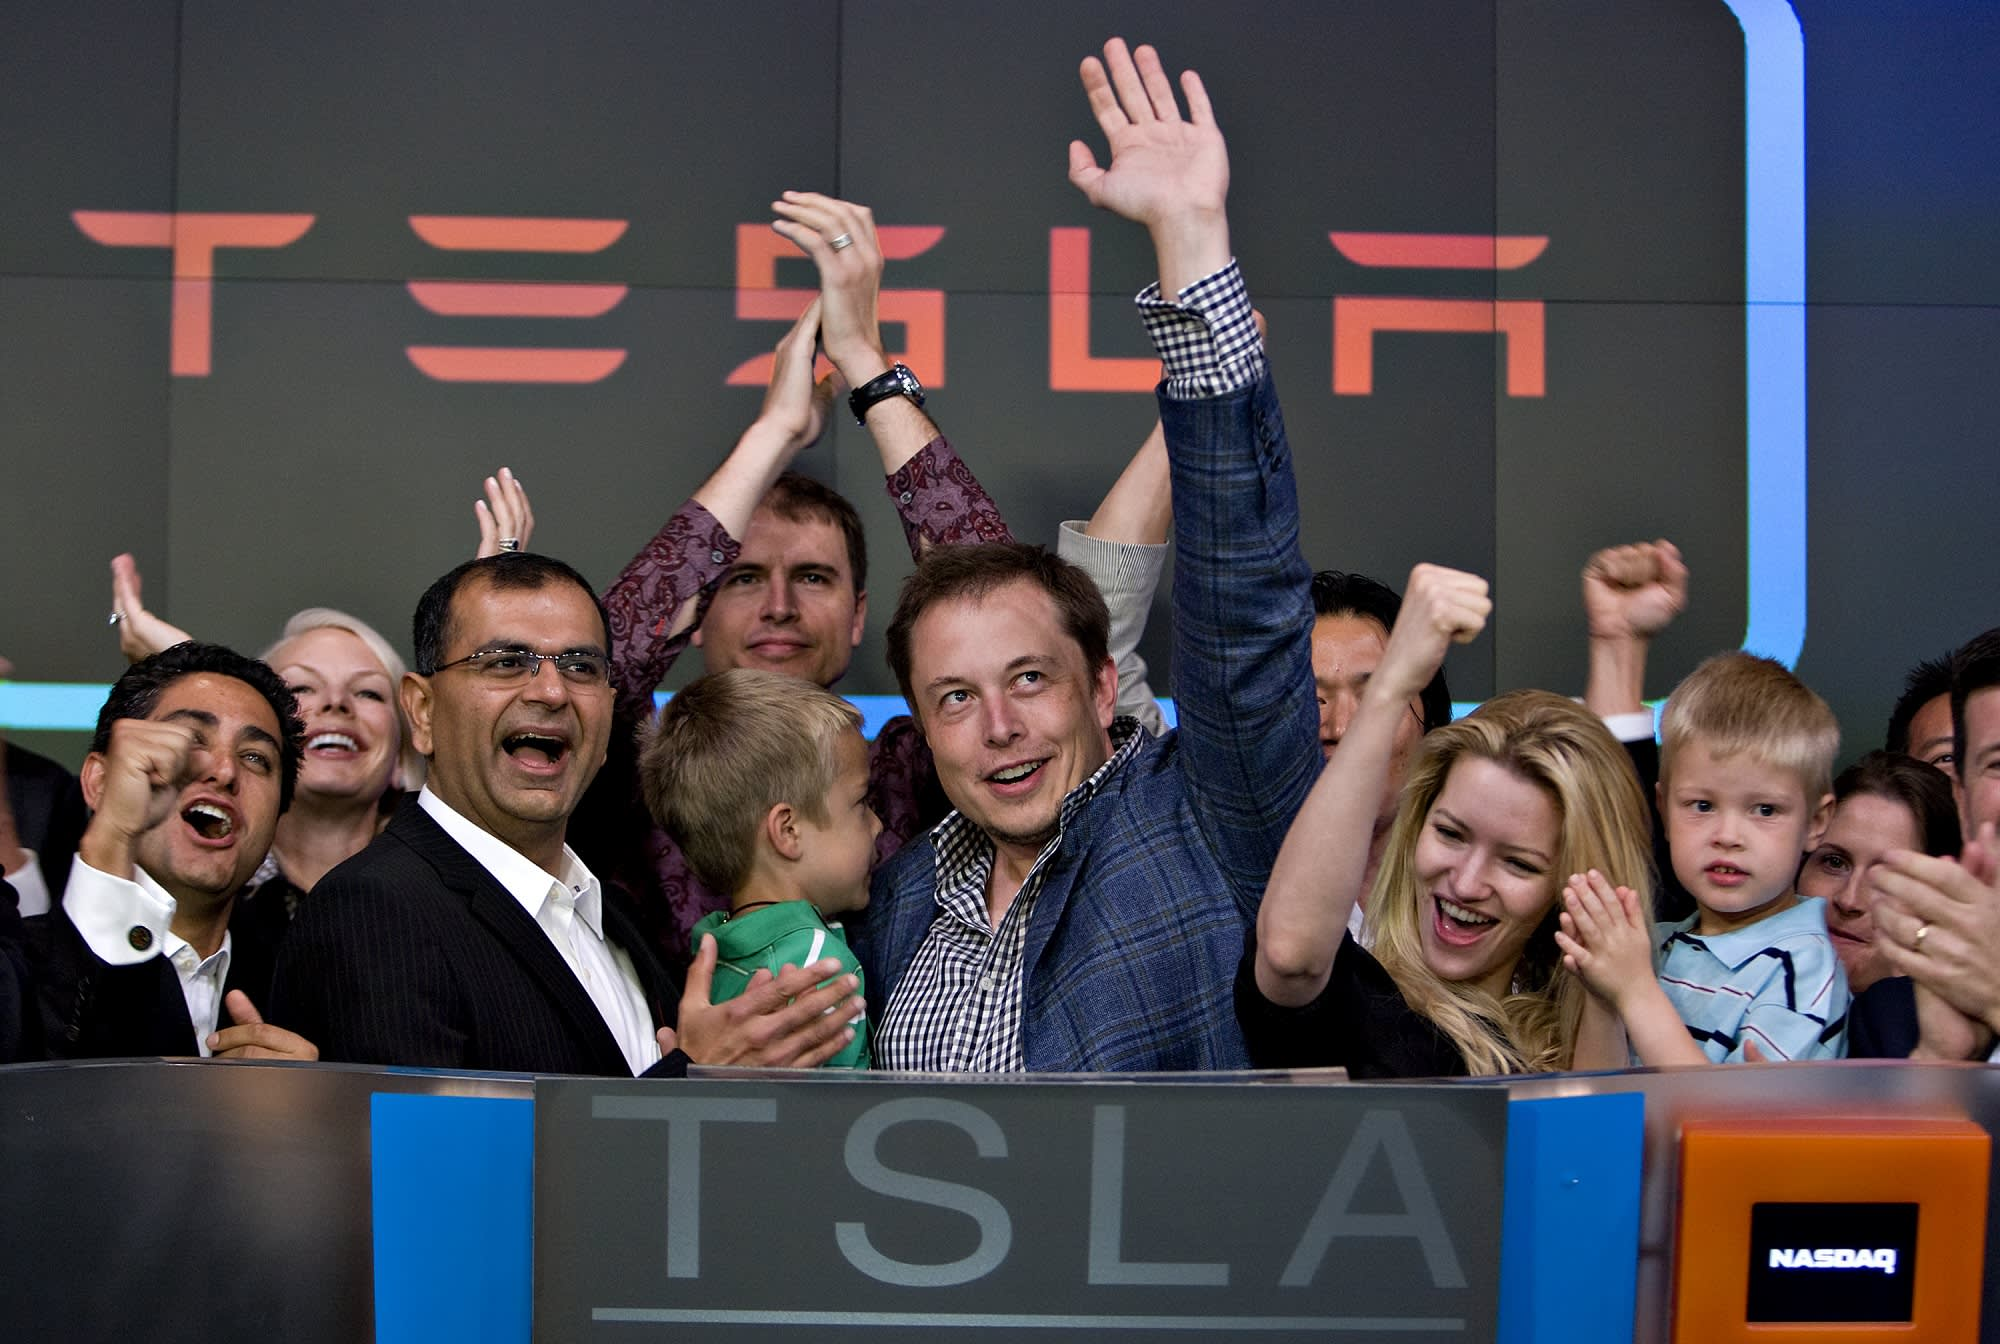 How to raise the next Elon Musk, according to an innovation